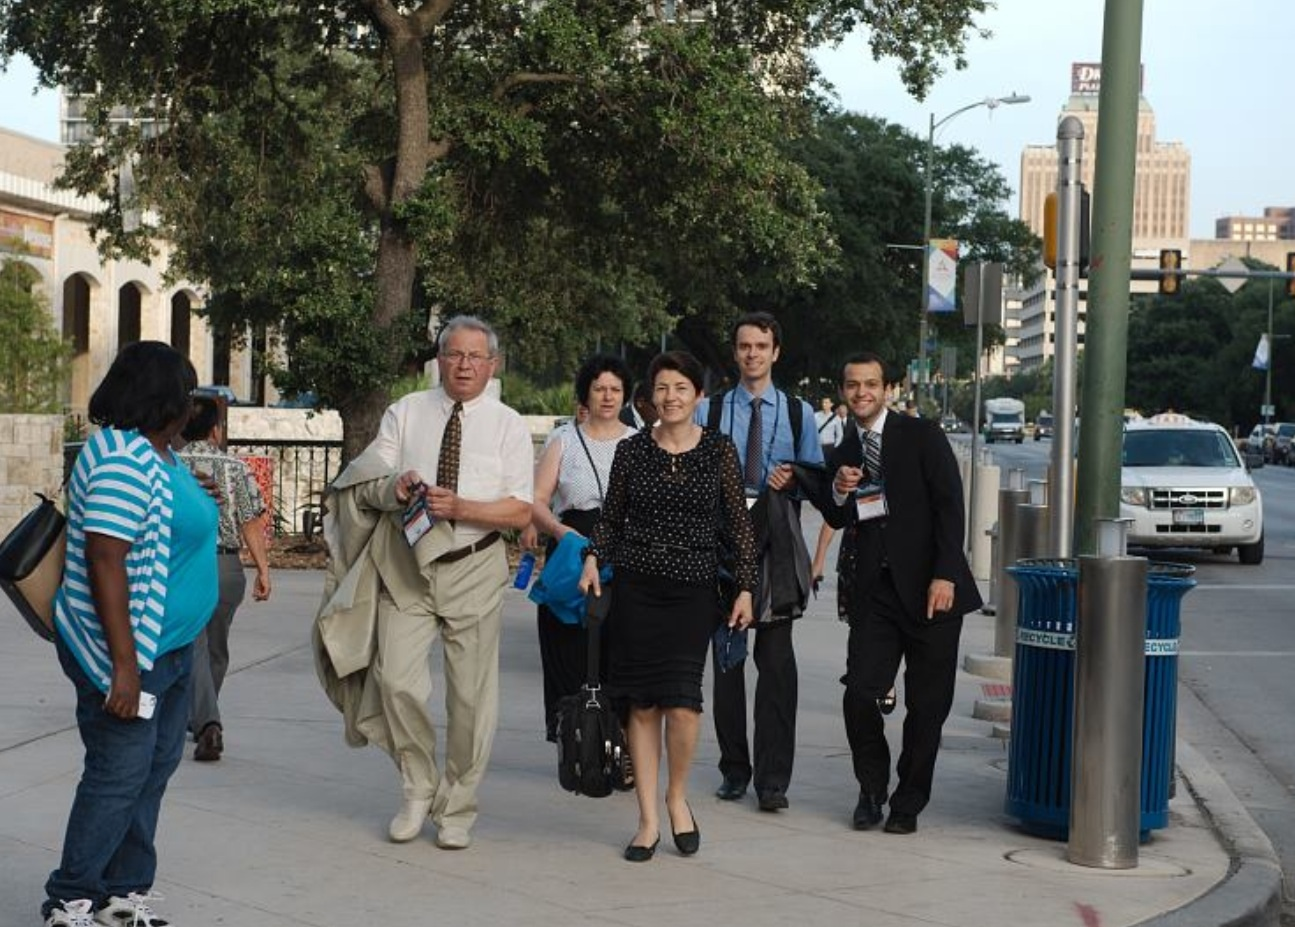 Adventists are strolling around San Antonio with purpose and a growing sense of ownership